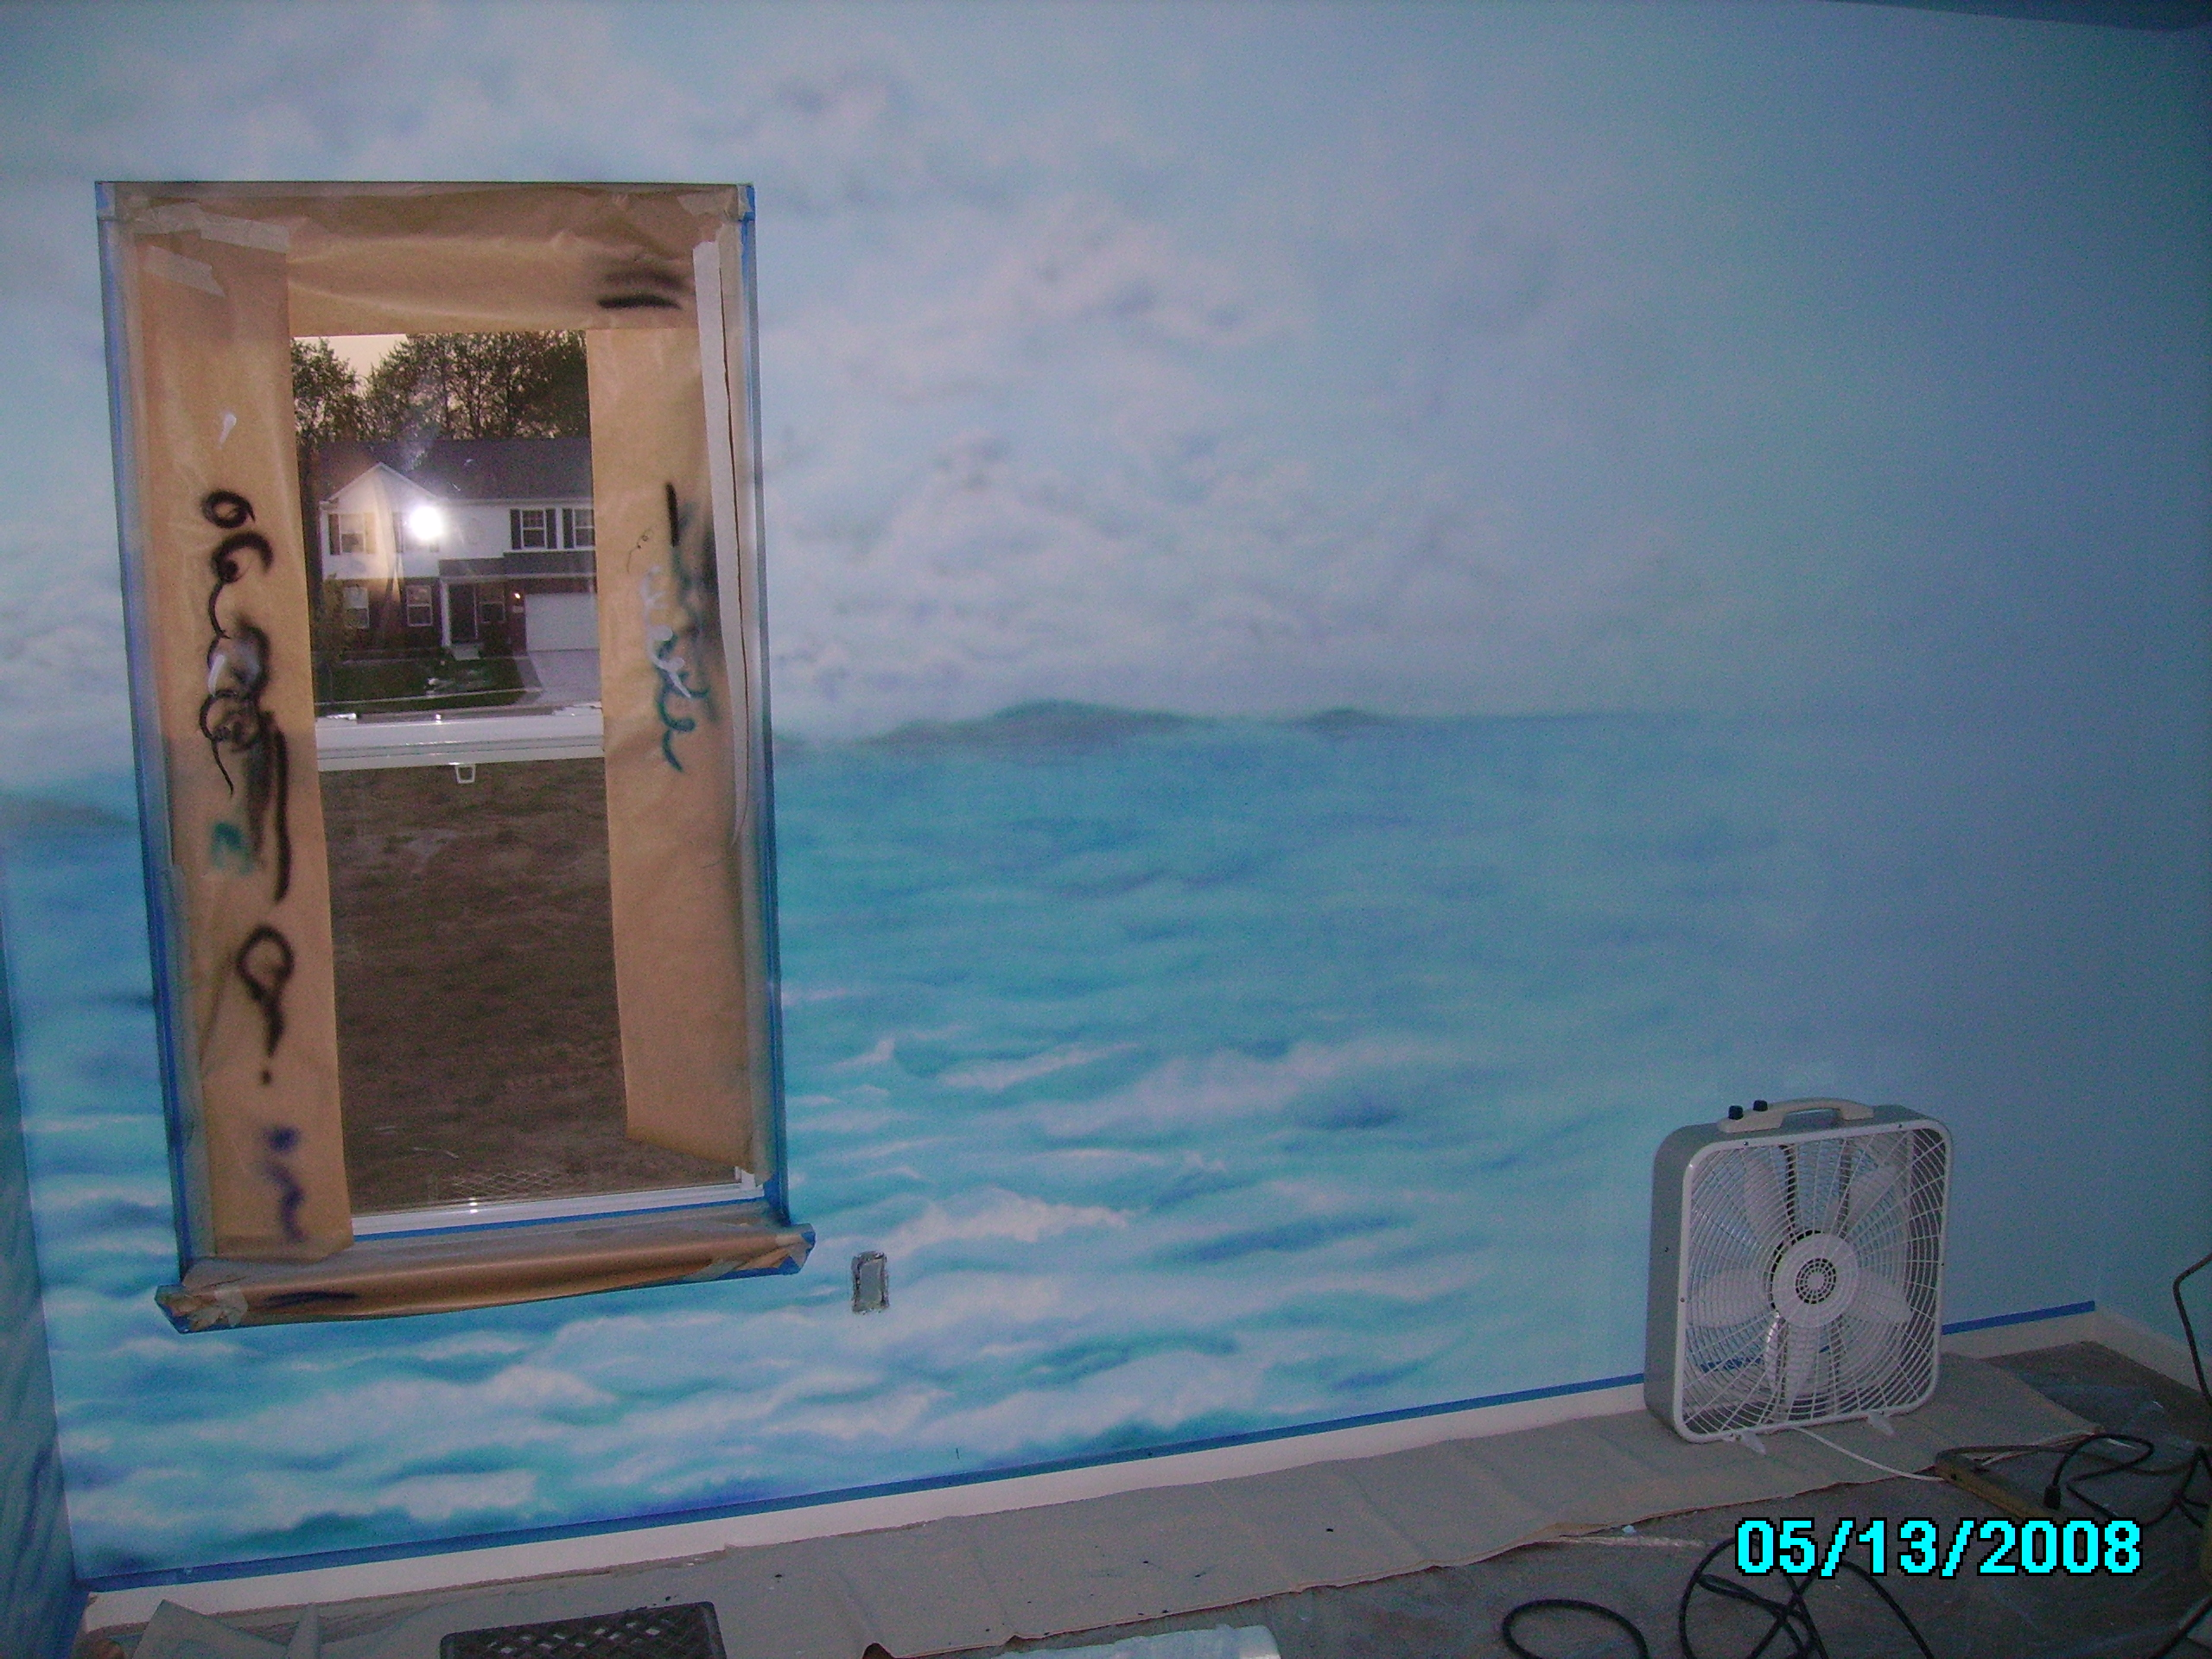 james labadie mural pirate ship kid s room harlig saker mural artist james labadie kids pirate ship mural right wall